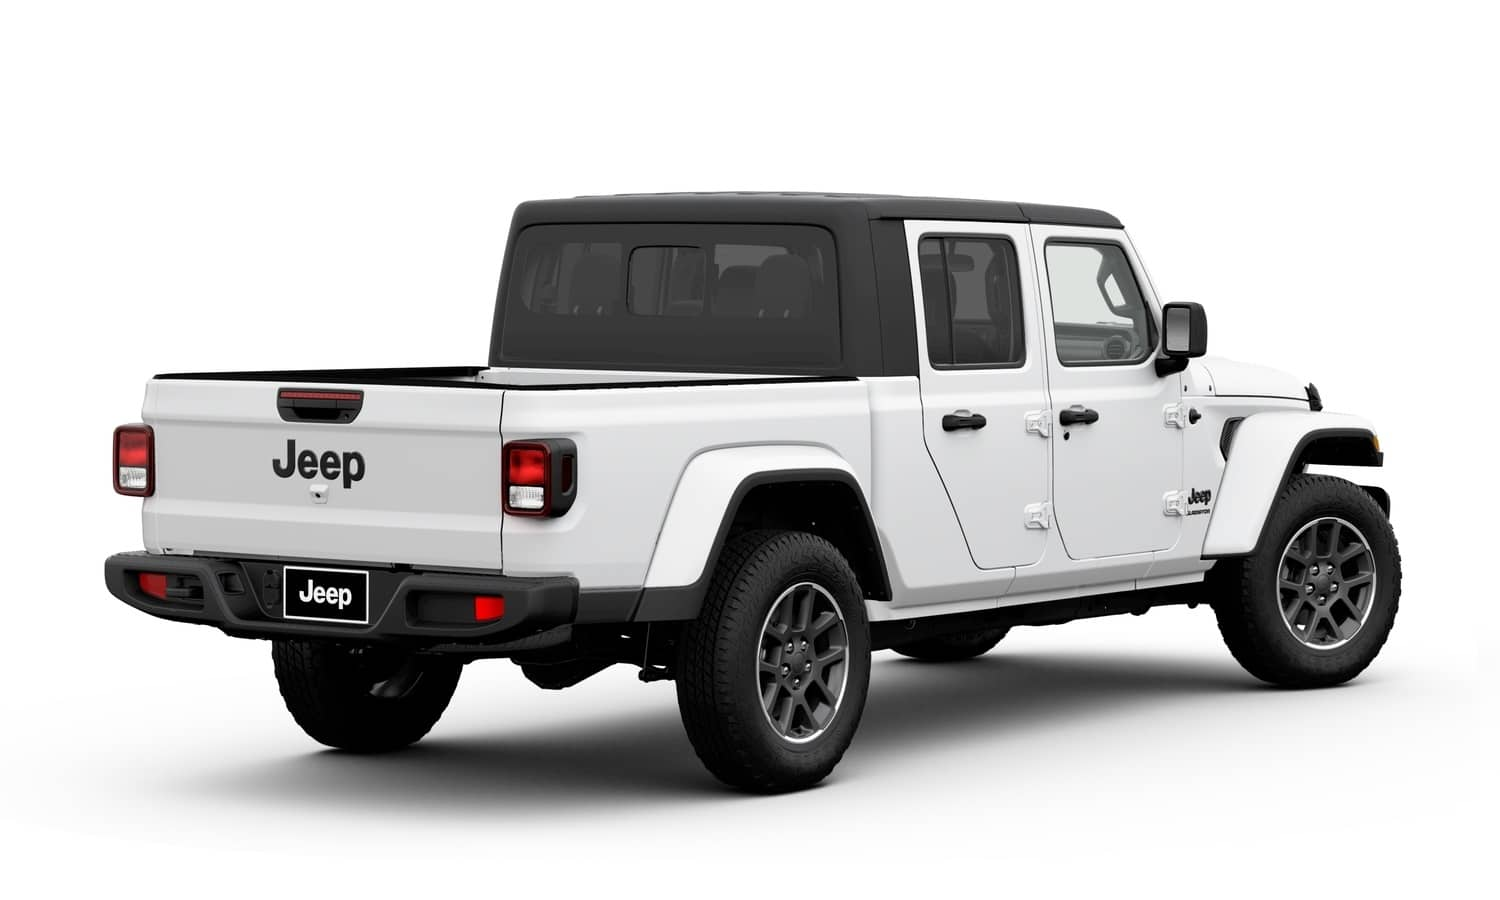 Jeep Gladiator Altitude 2020 rear